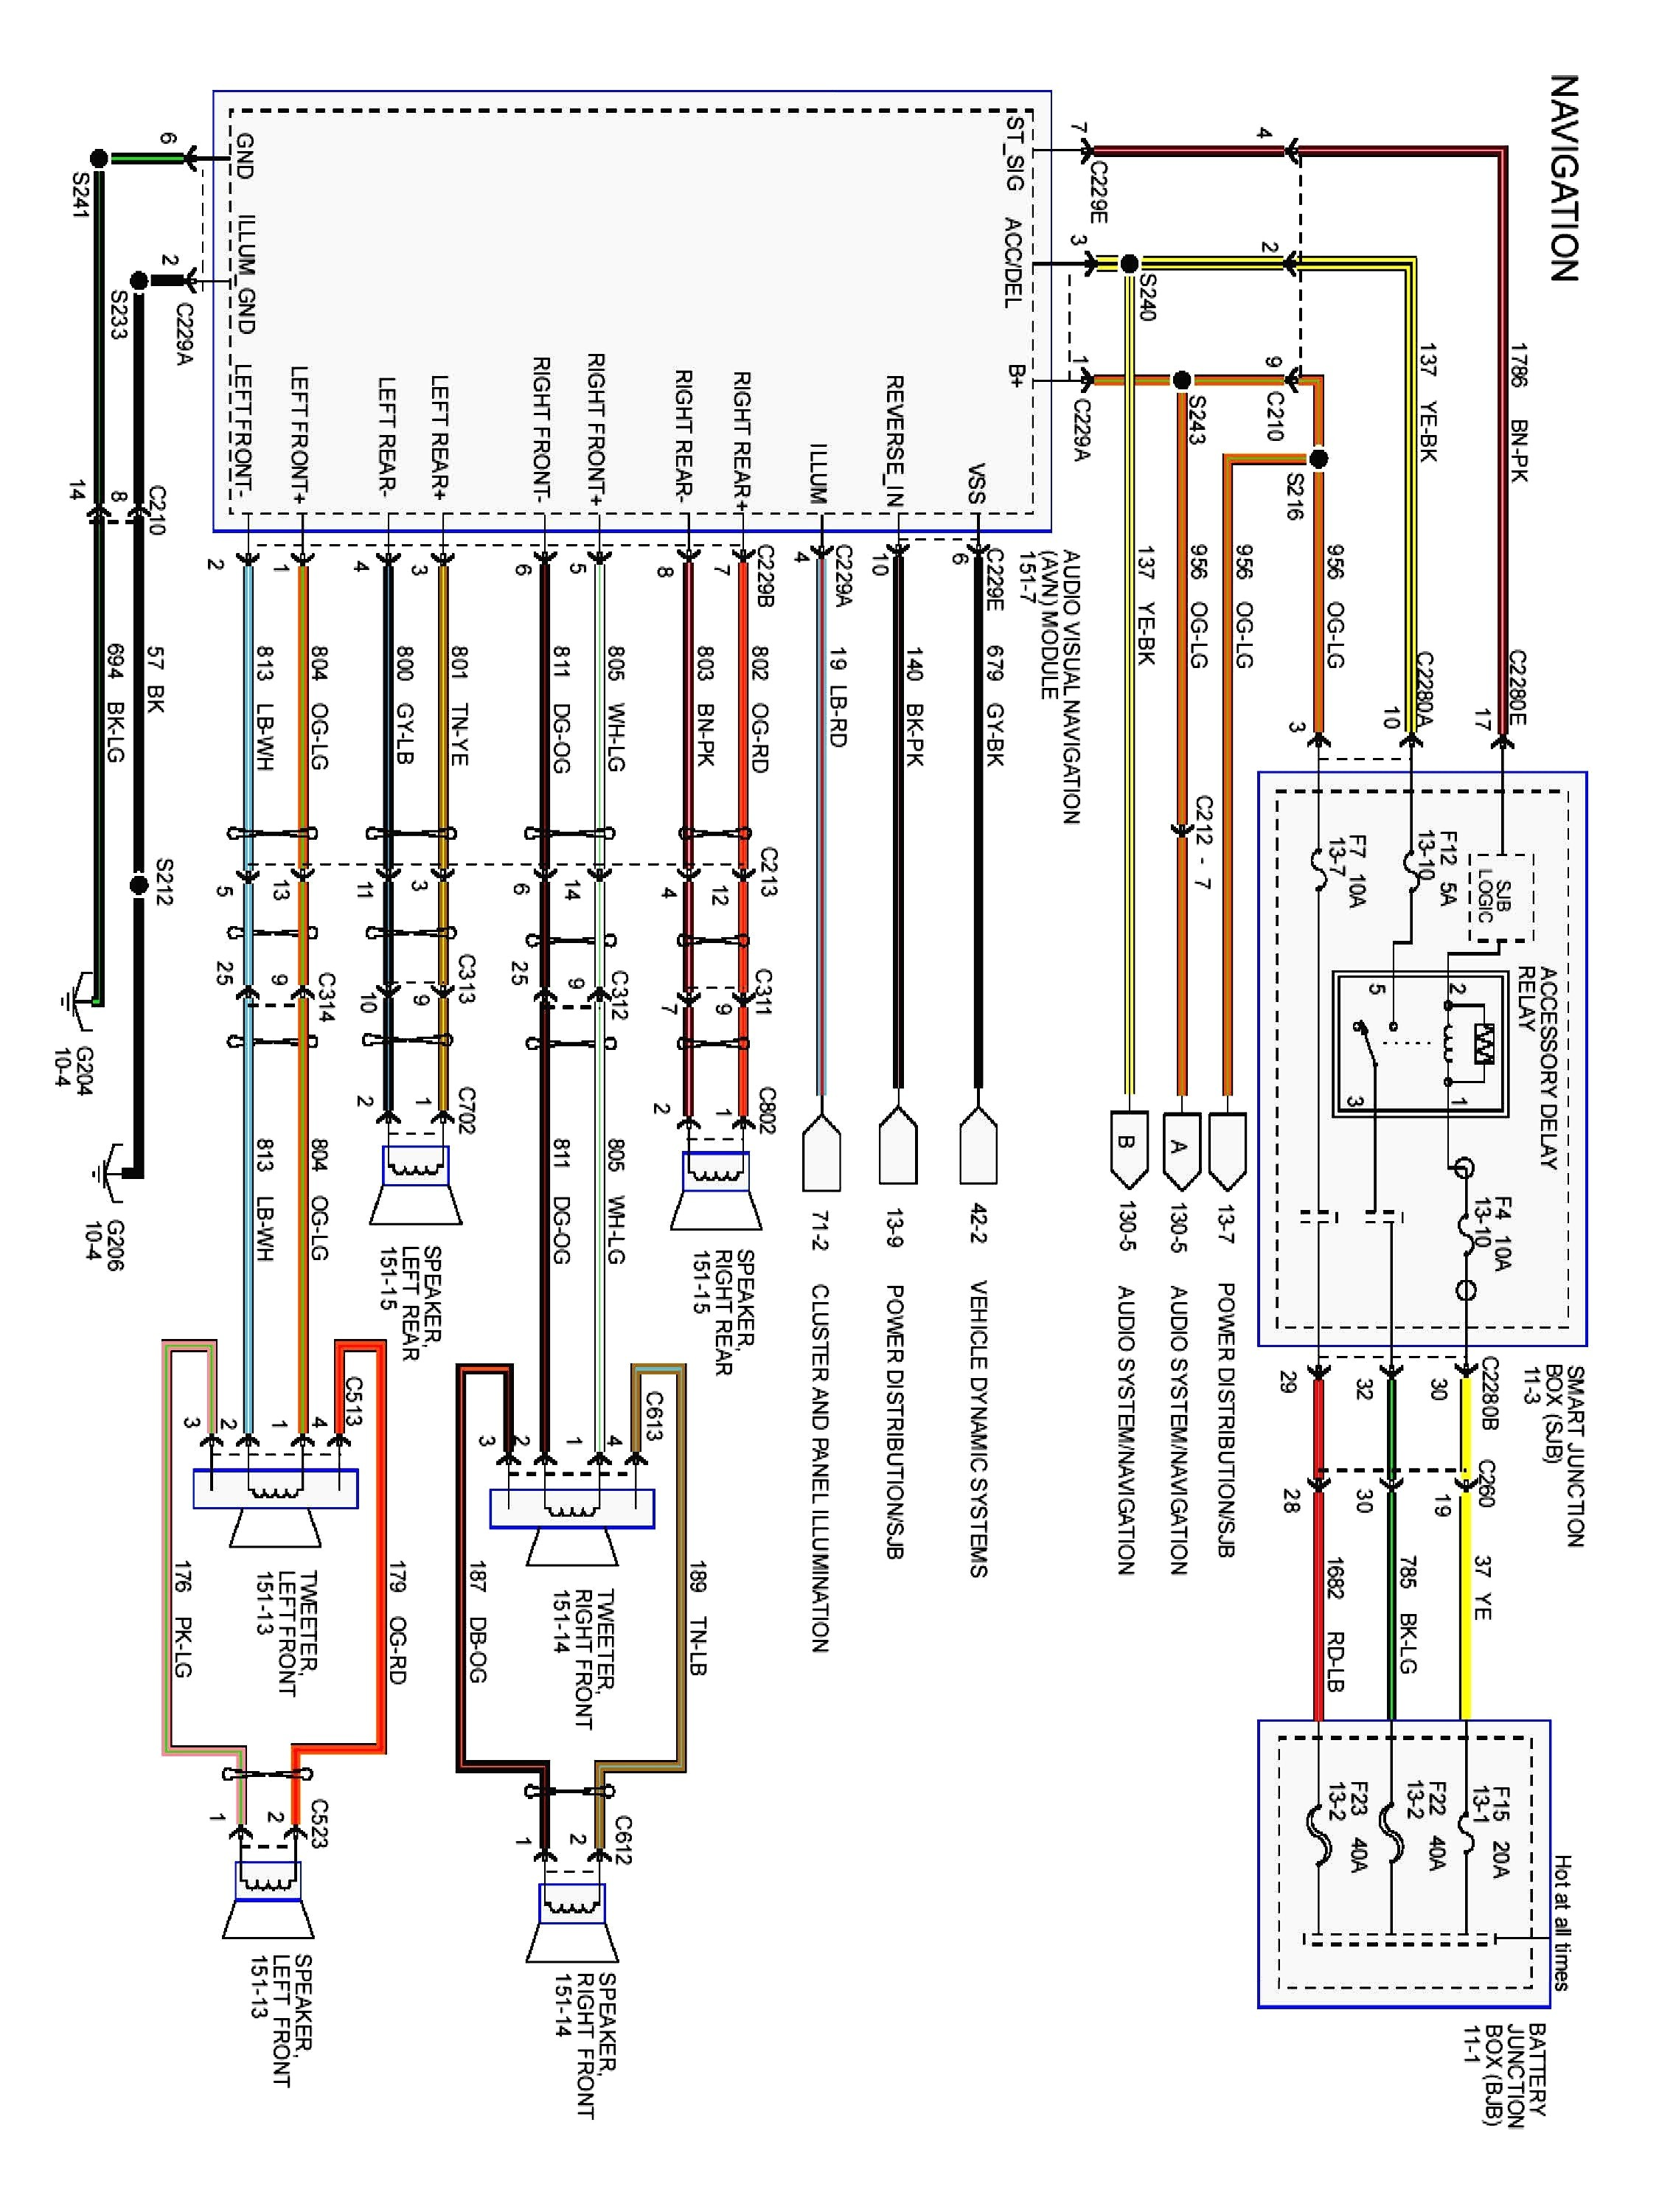 2011 ford f 250 radio wiring harness - wiring diagram system school-norm -  school-norm.ediliadesign.it  ediliadesign.it